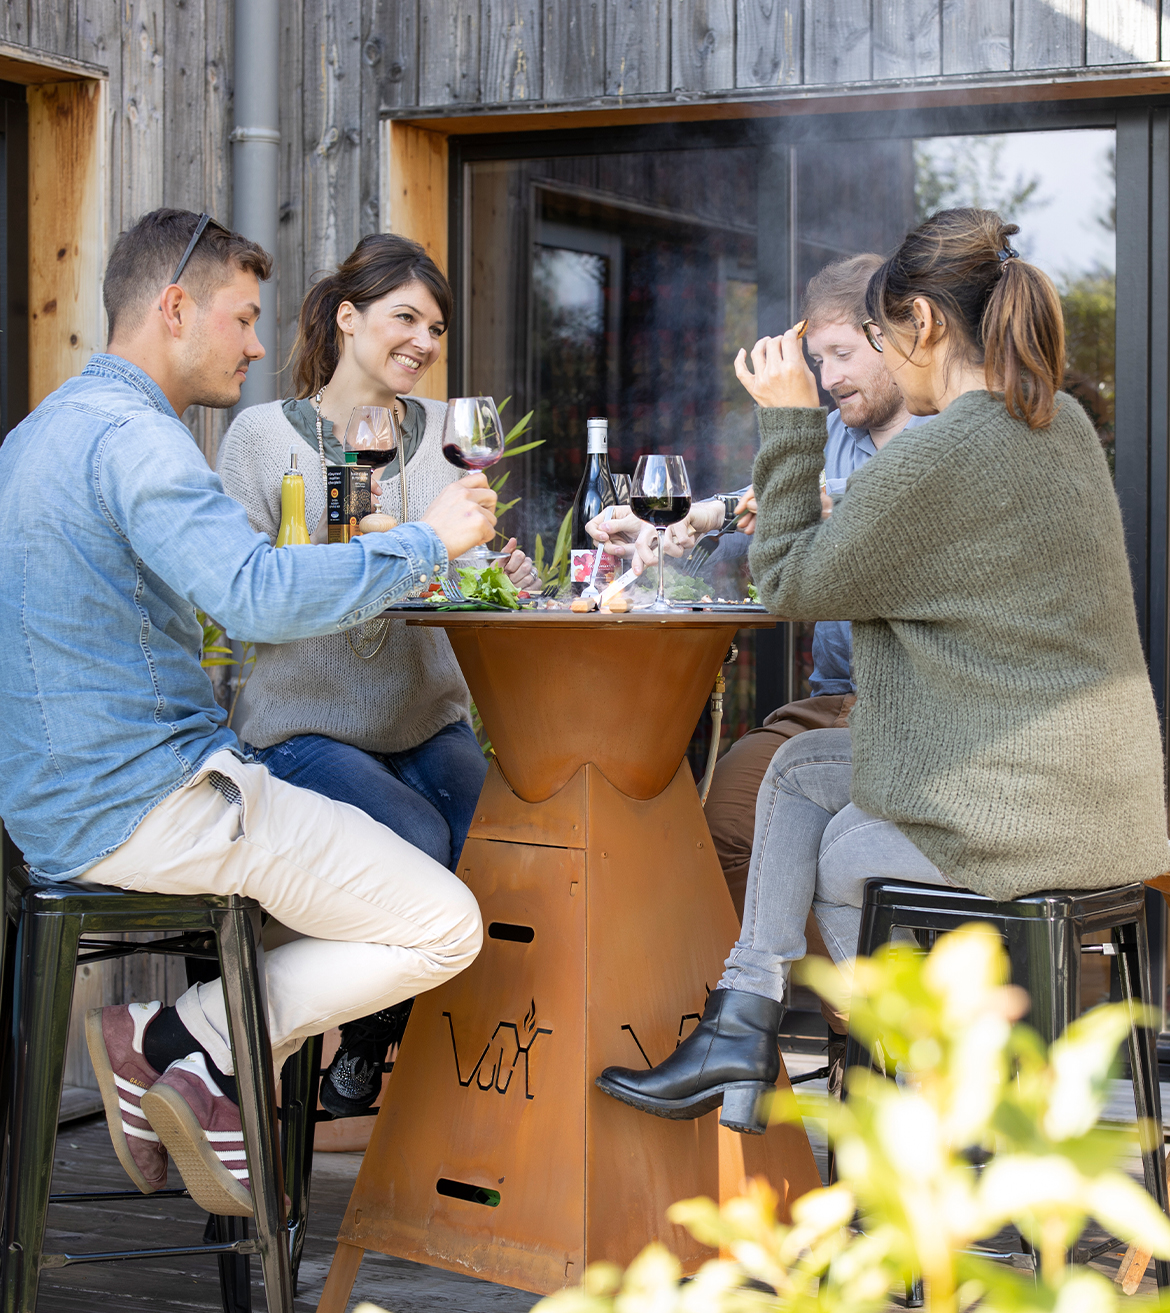 about-outdoor-barbeque-table